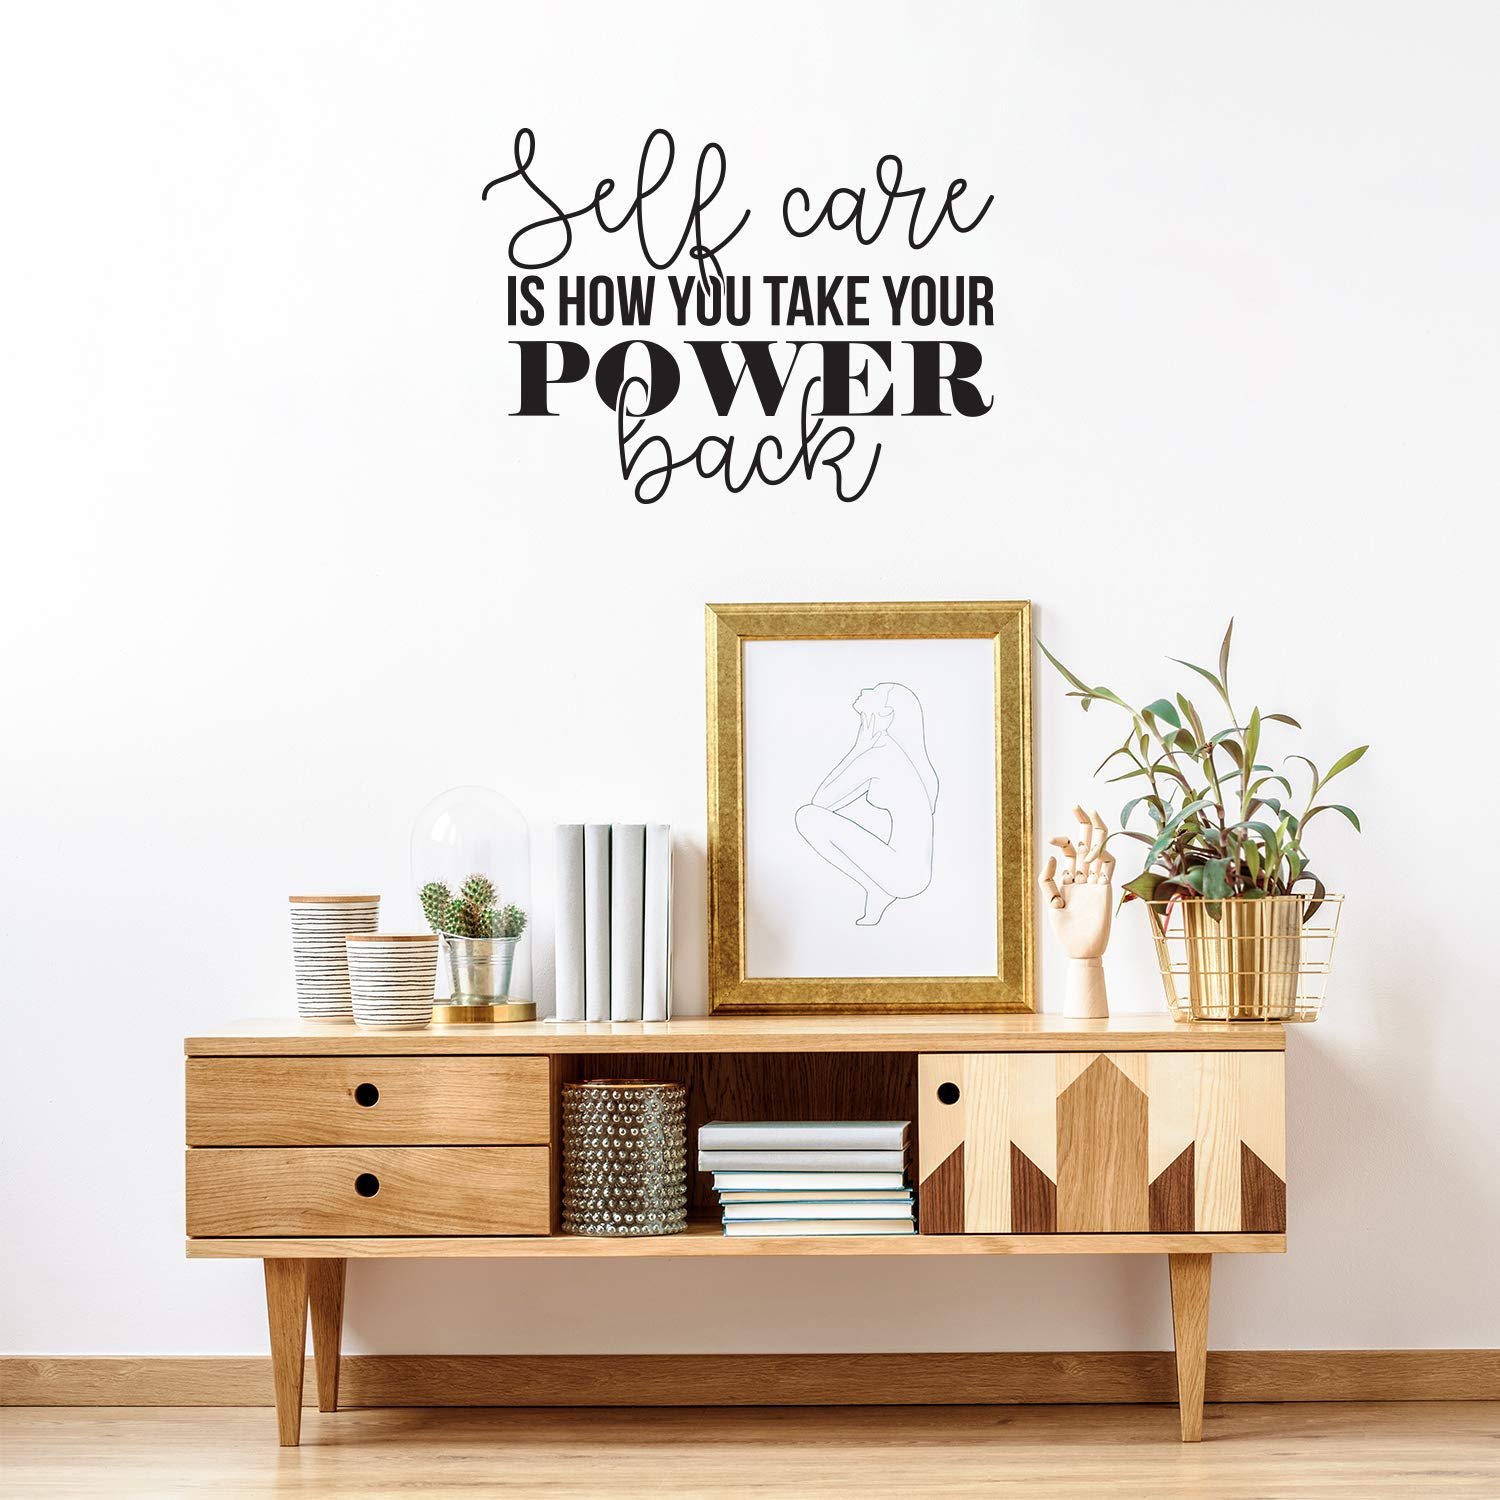 """Vinyl Wall Art Decal - Self Care is How You Take Your Power Back - 22"""" x 30"""" - Modern Inspirational Self Esteem Quote Sticker for Home School Bedroom Work Office Classroom Decor (Black)"""